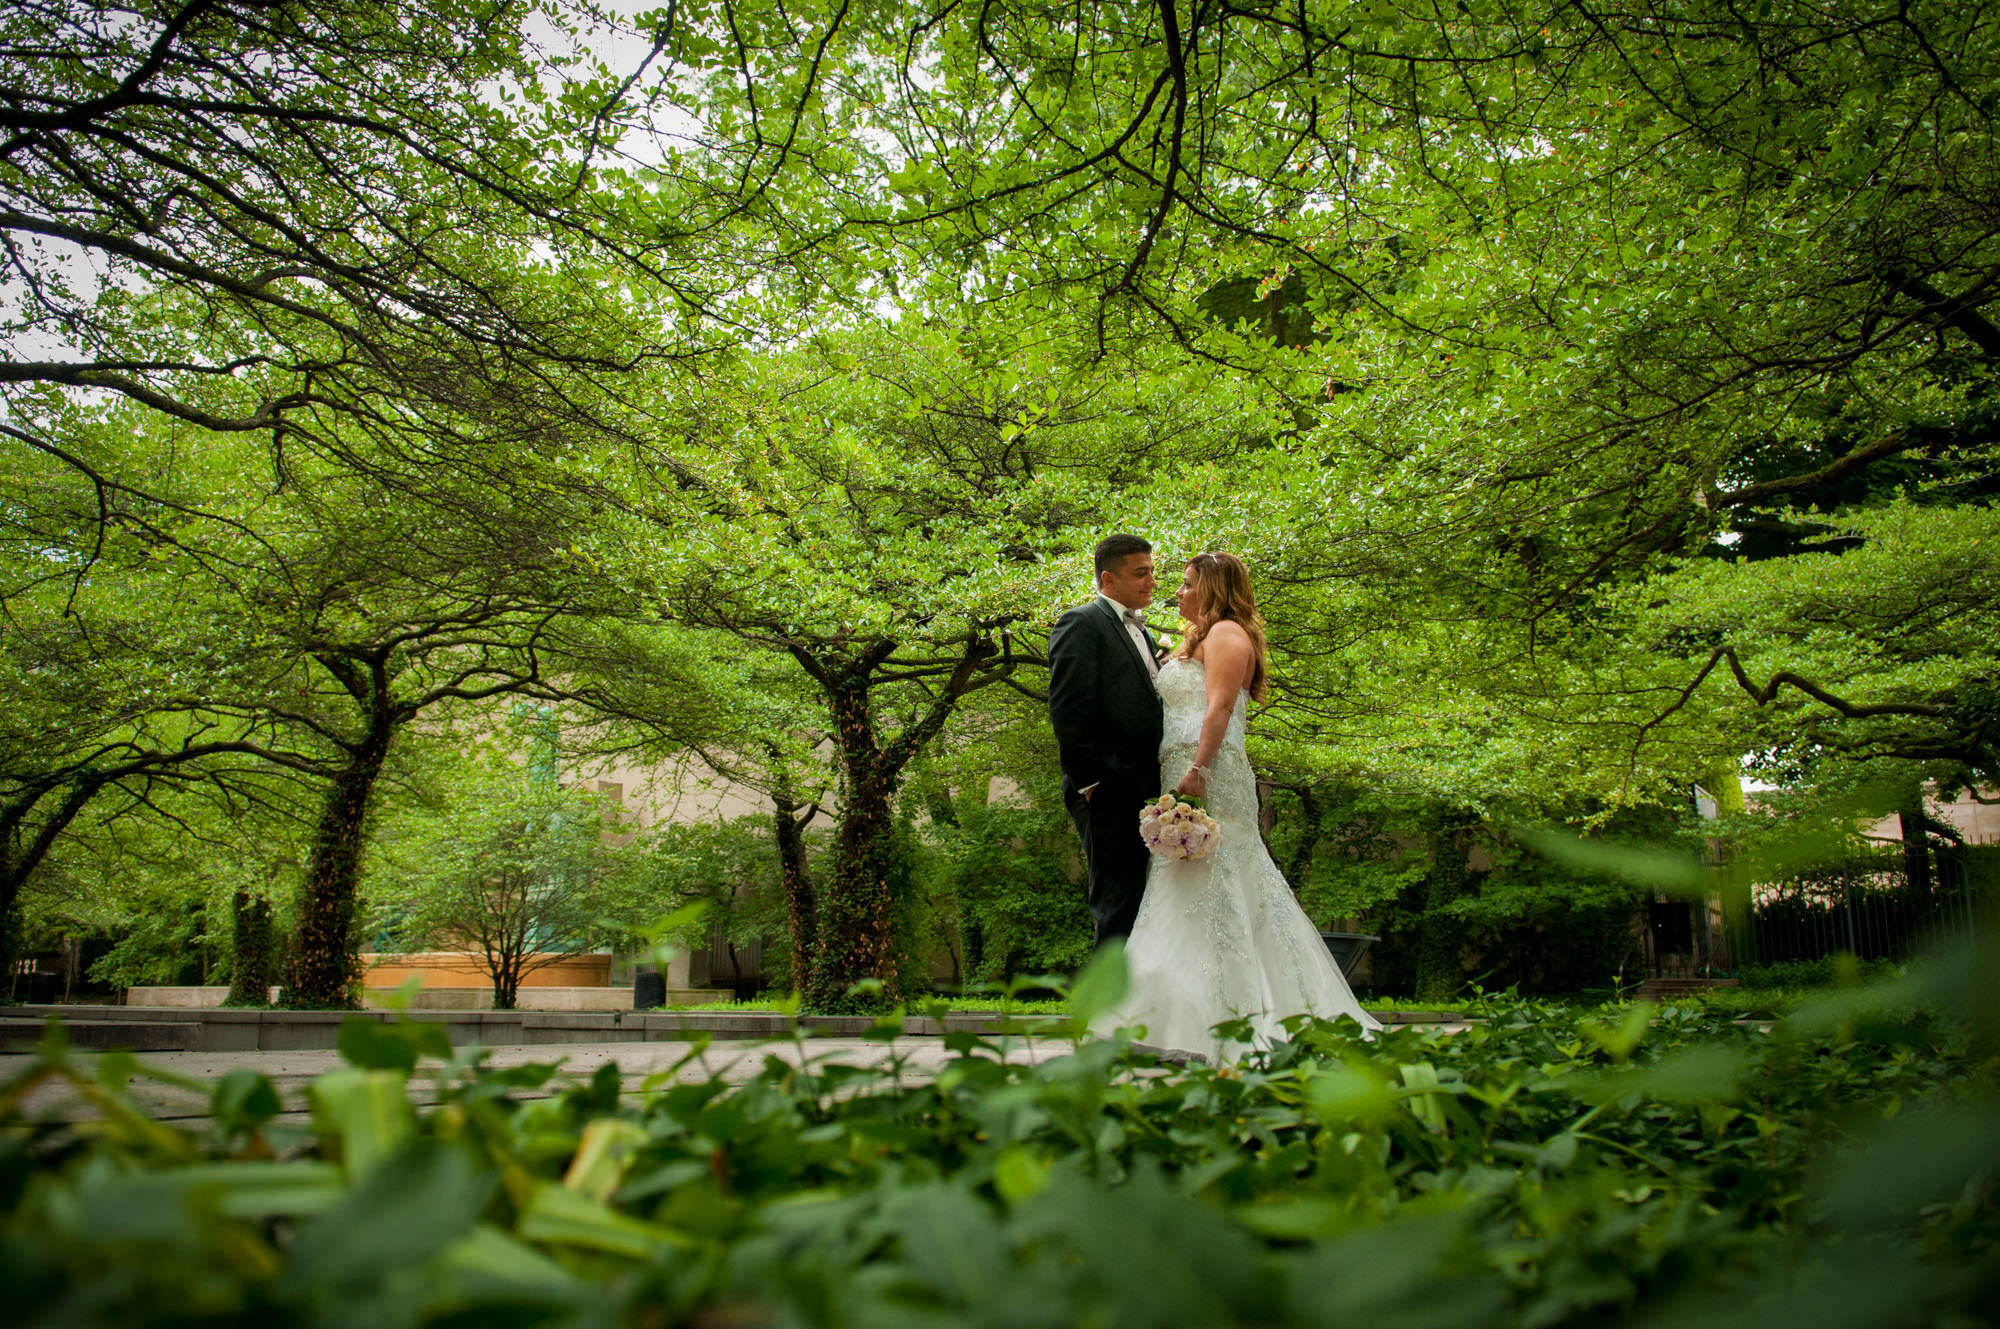 Bride Groom The Art Institute South Garden Trees